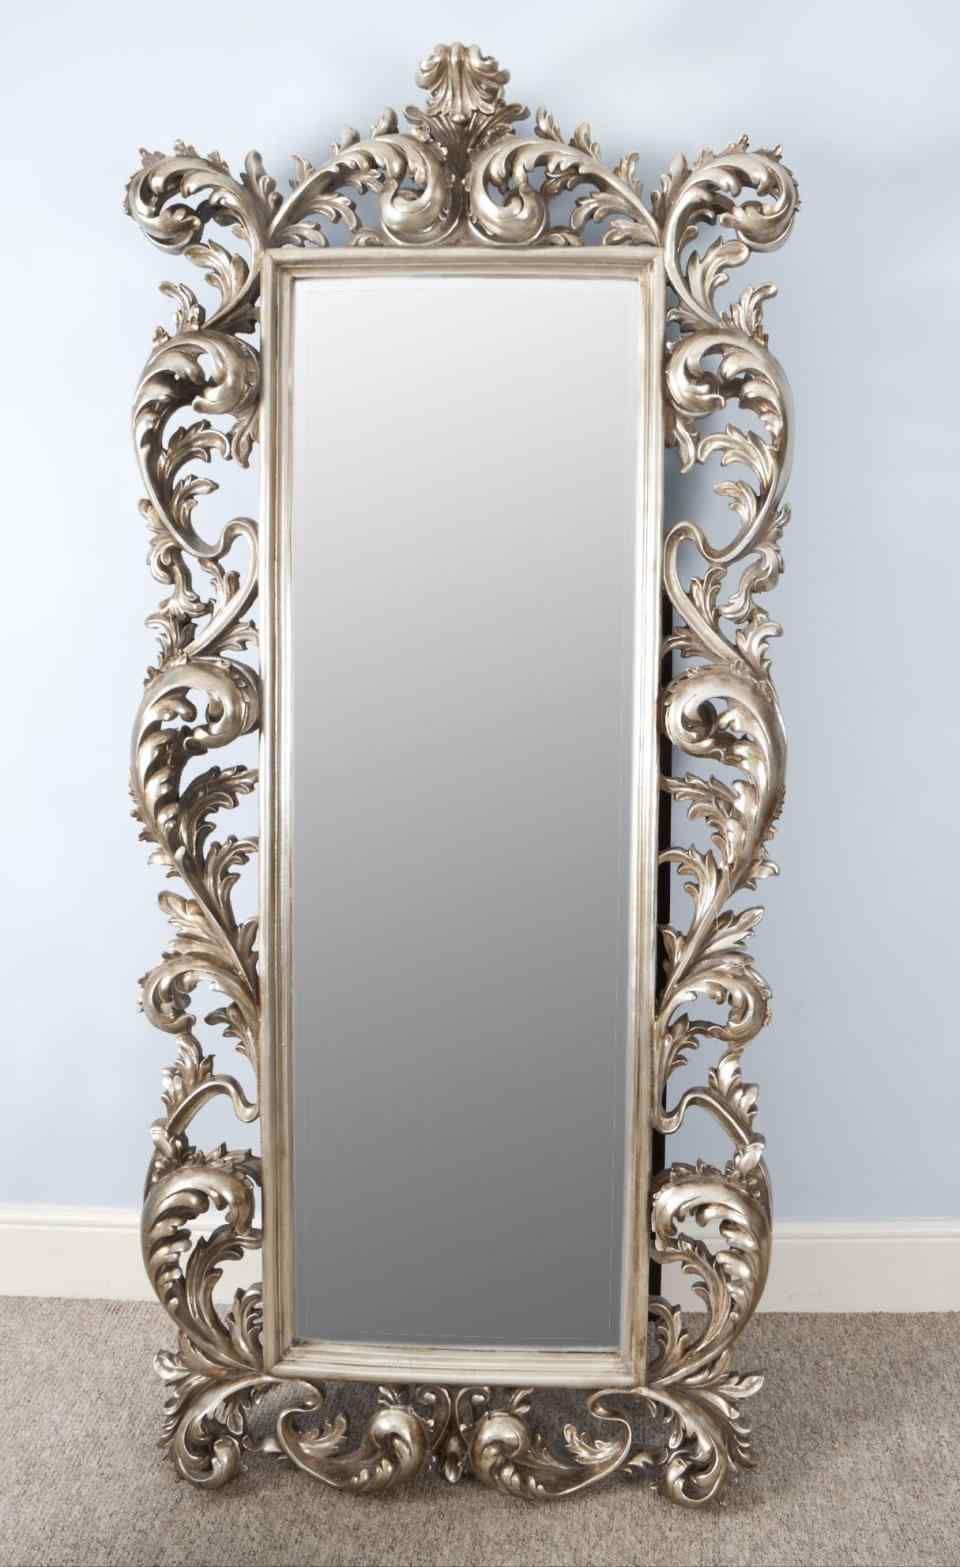 Incredible 14 Amazing Big Fancy Mirrors Design For Your Home